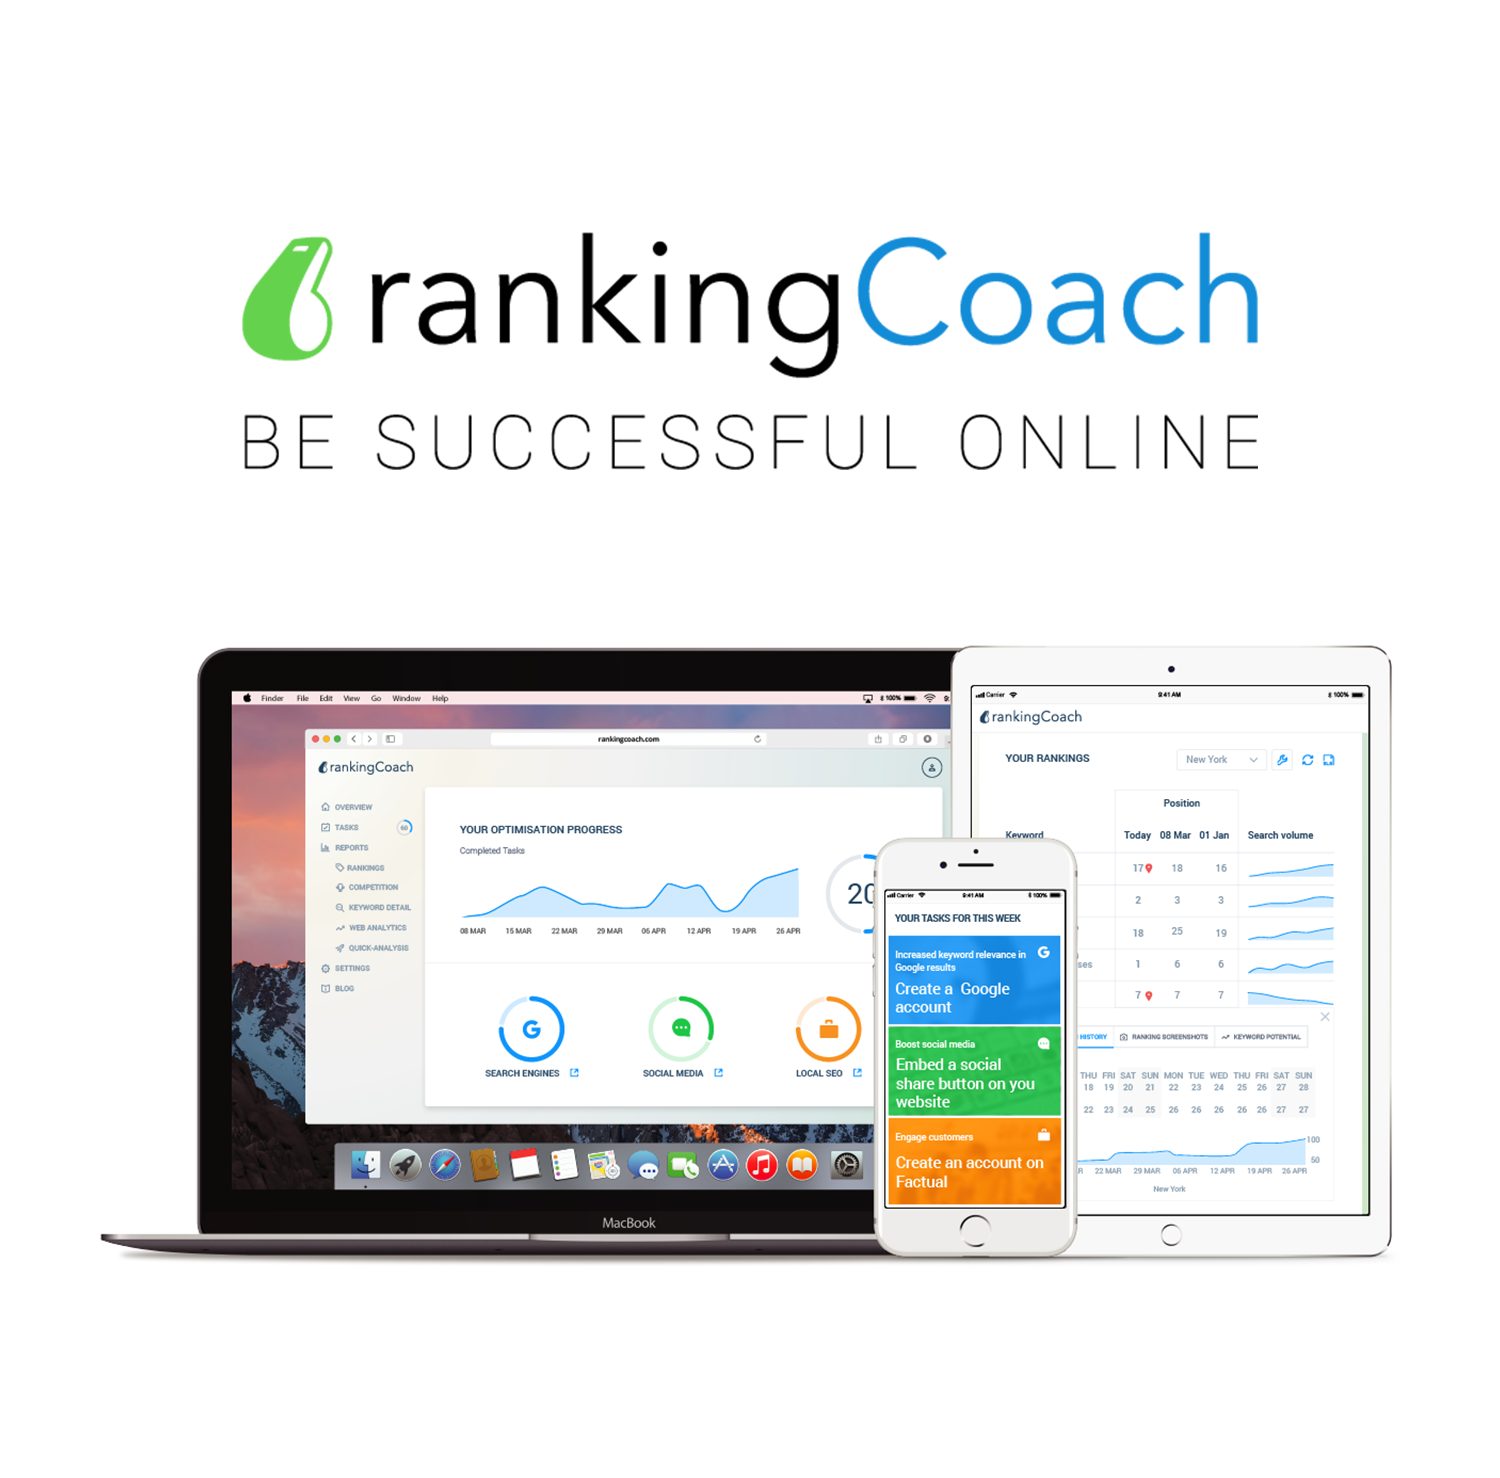 rankingCoach dashboards